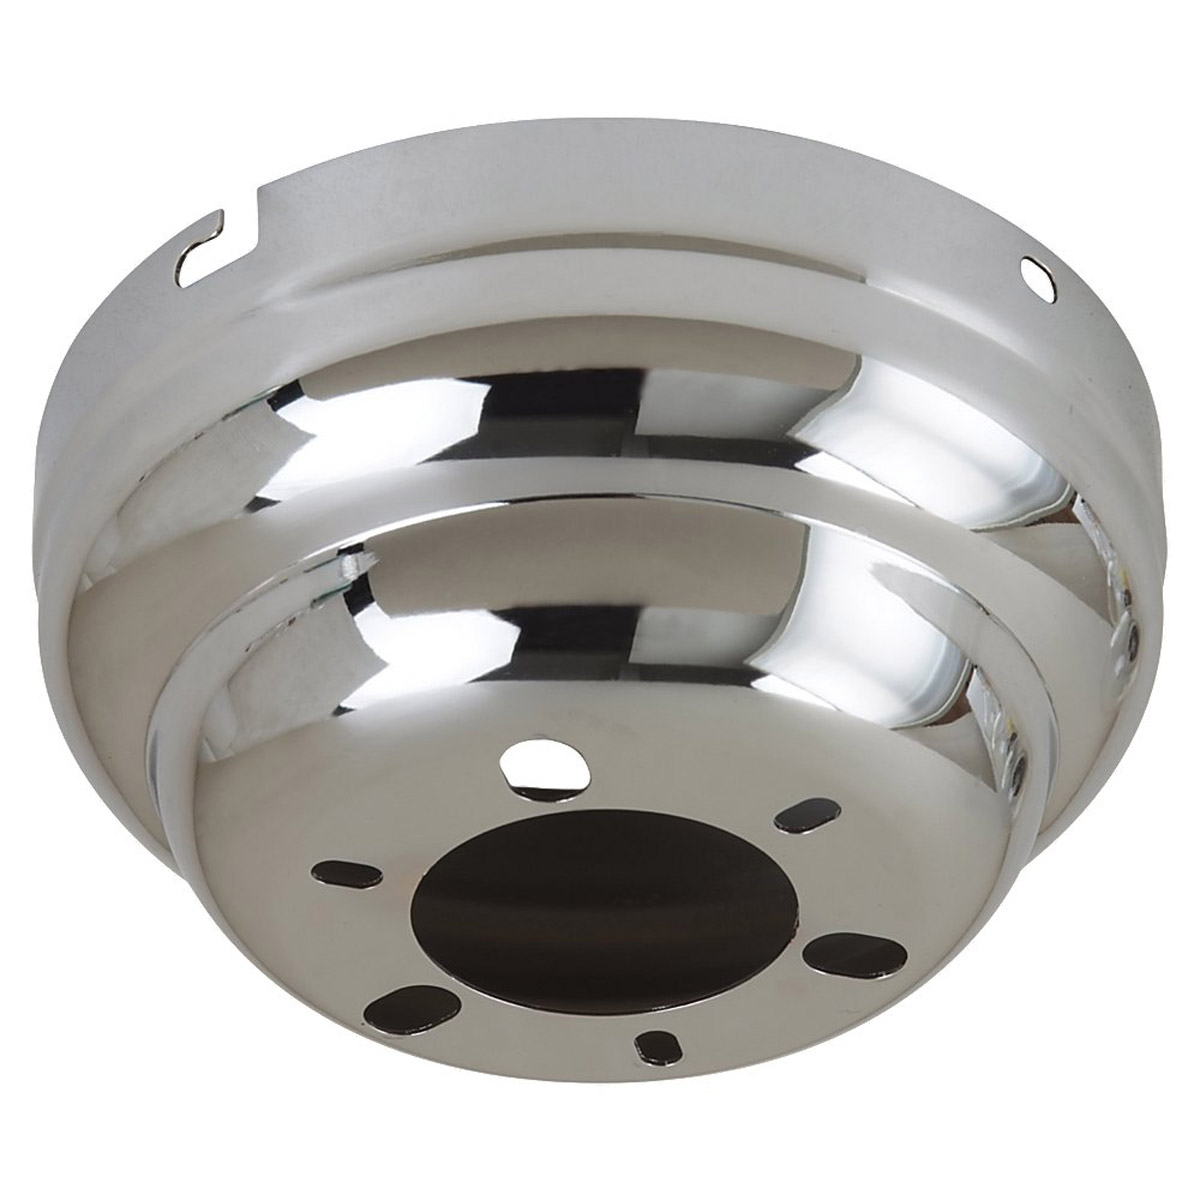 Sea Gull 1631-05 Signature Chrome Sloped Ceiling Adapter photo